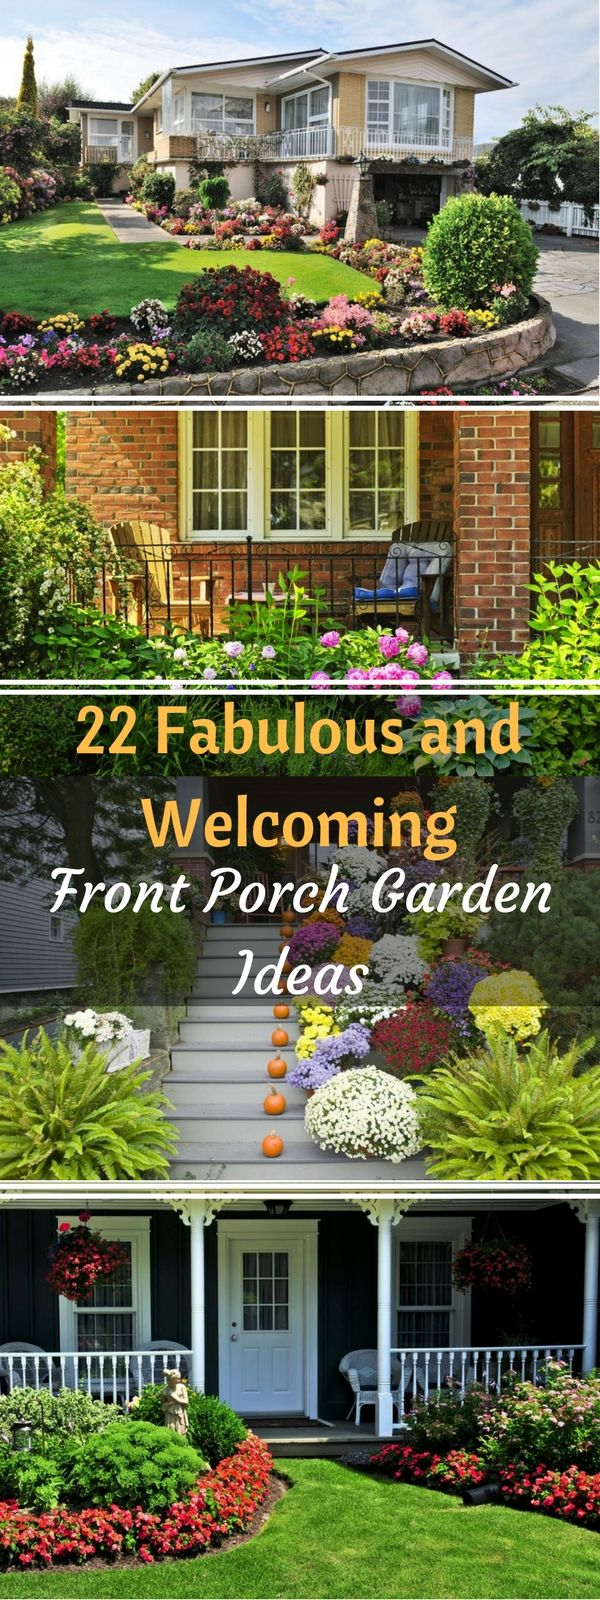 22 Fabulous and Welcoming Front Porch Garden